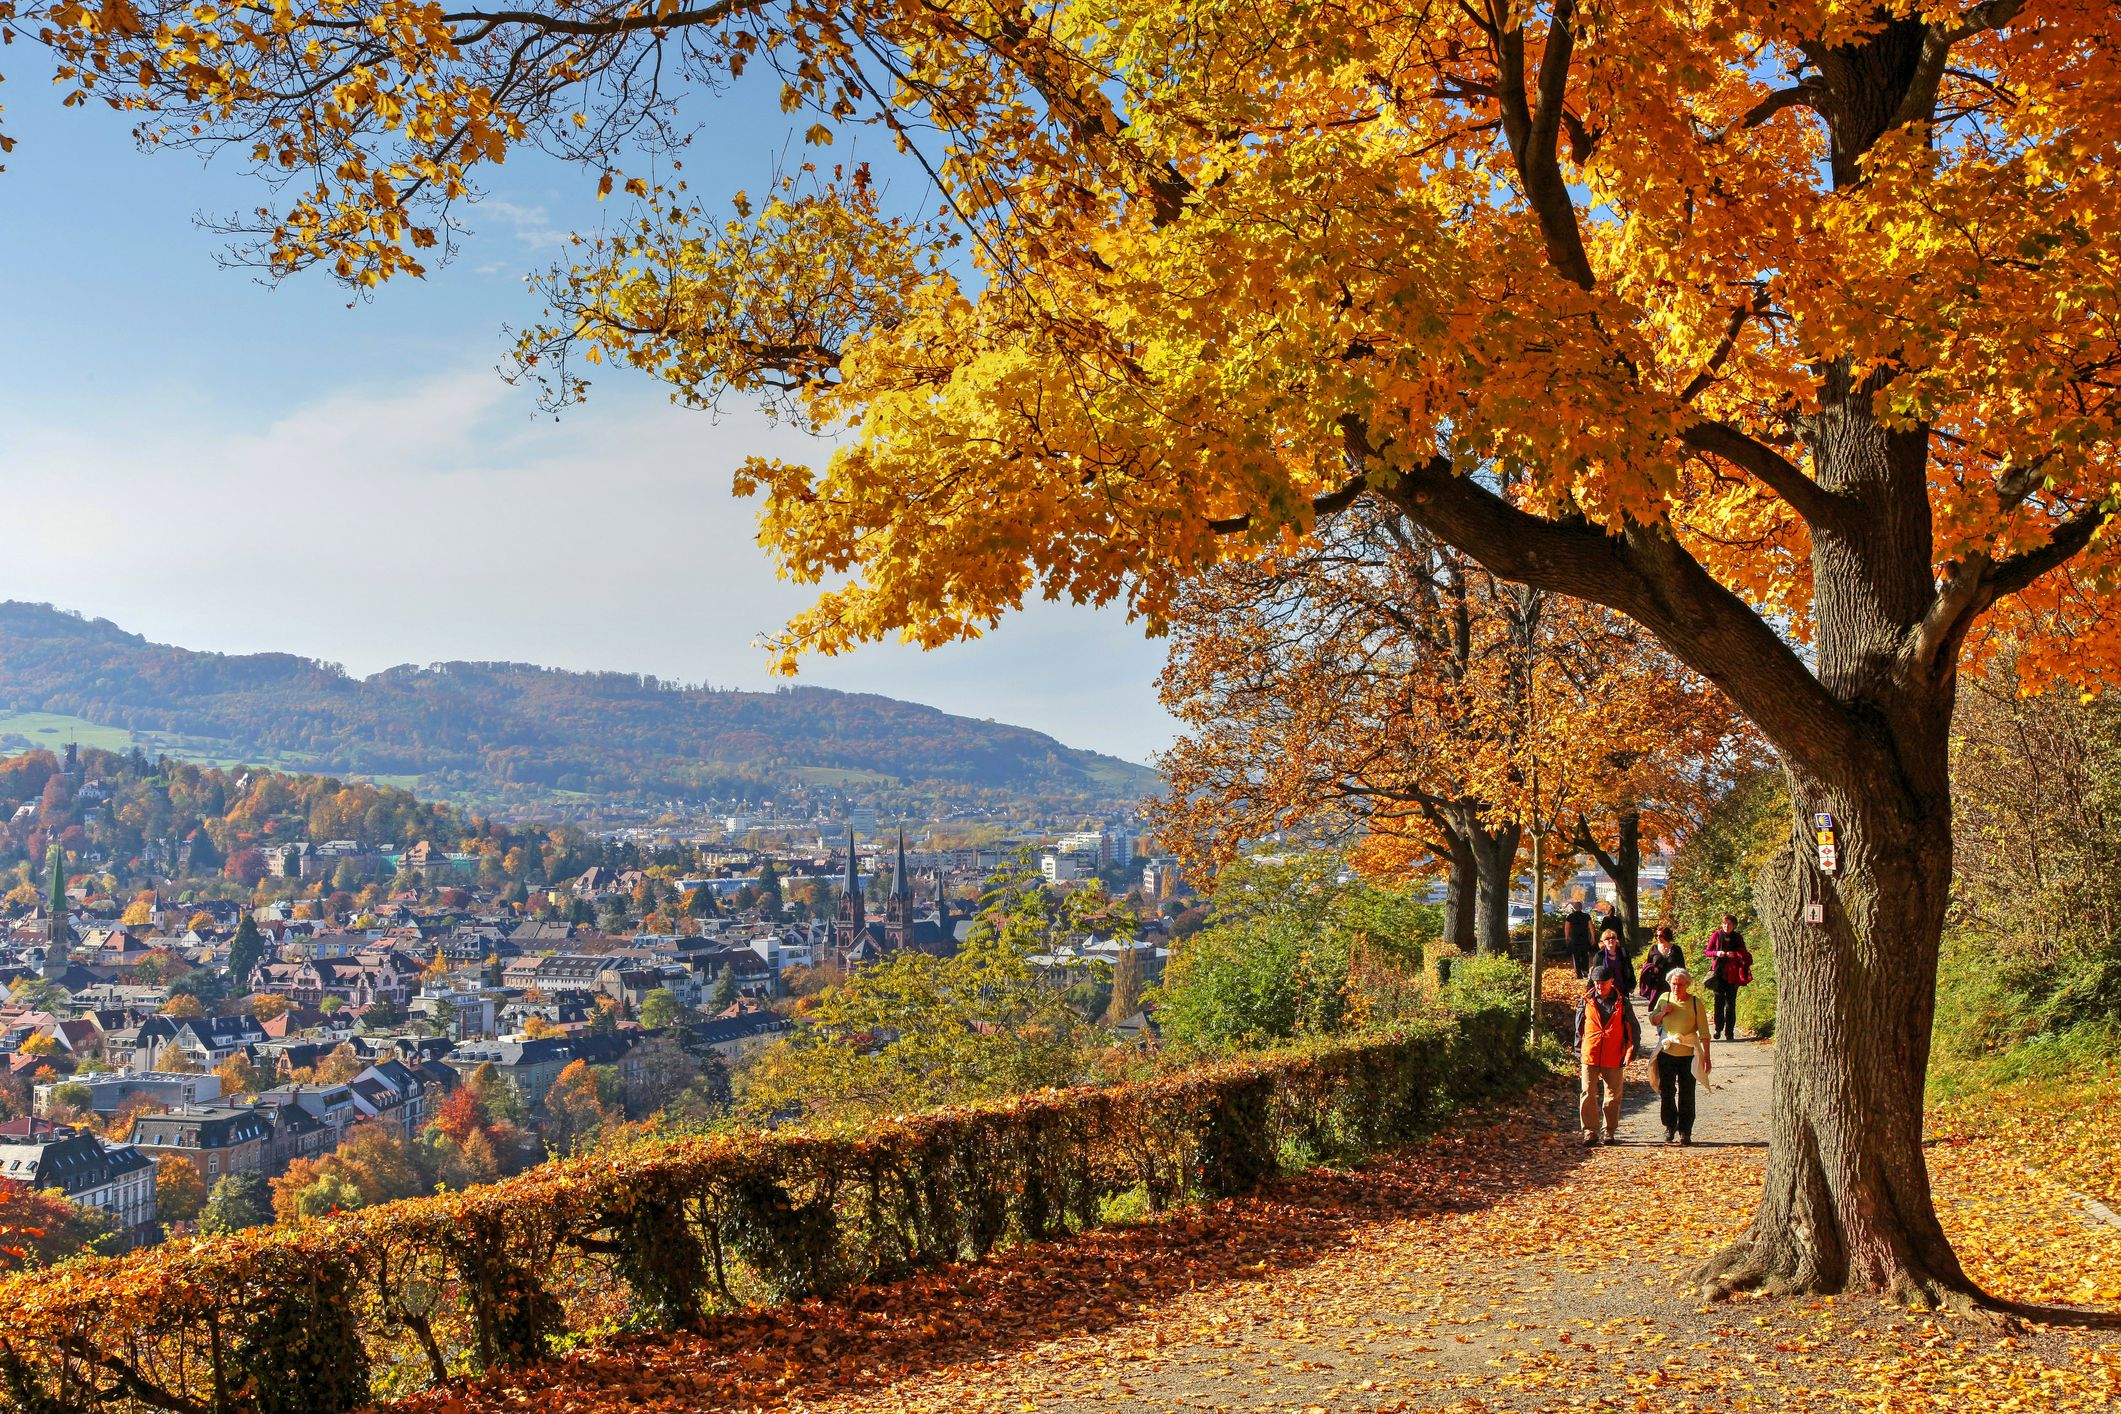 Best Sites For Autumn Leaves In Germany